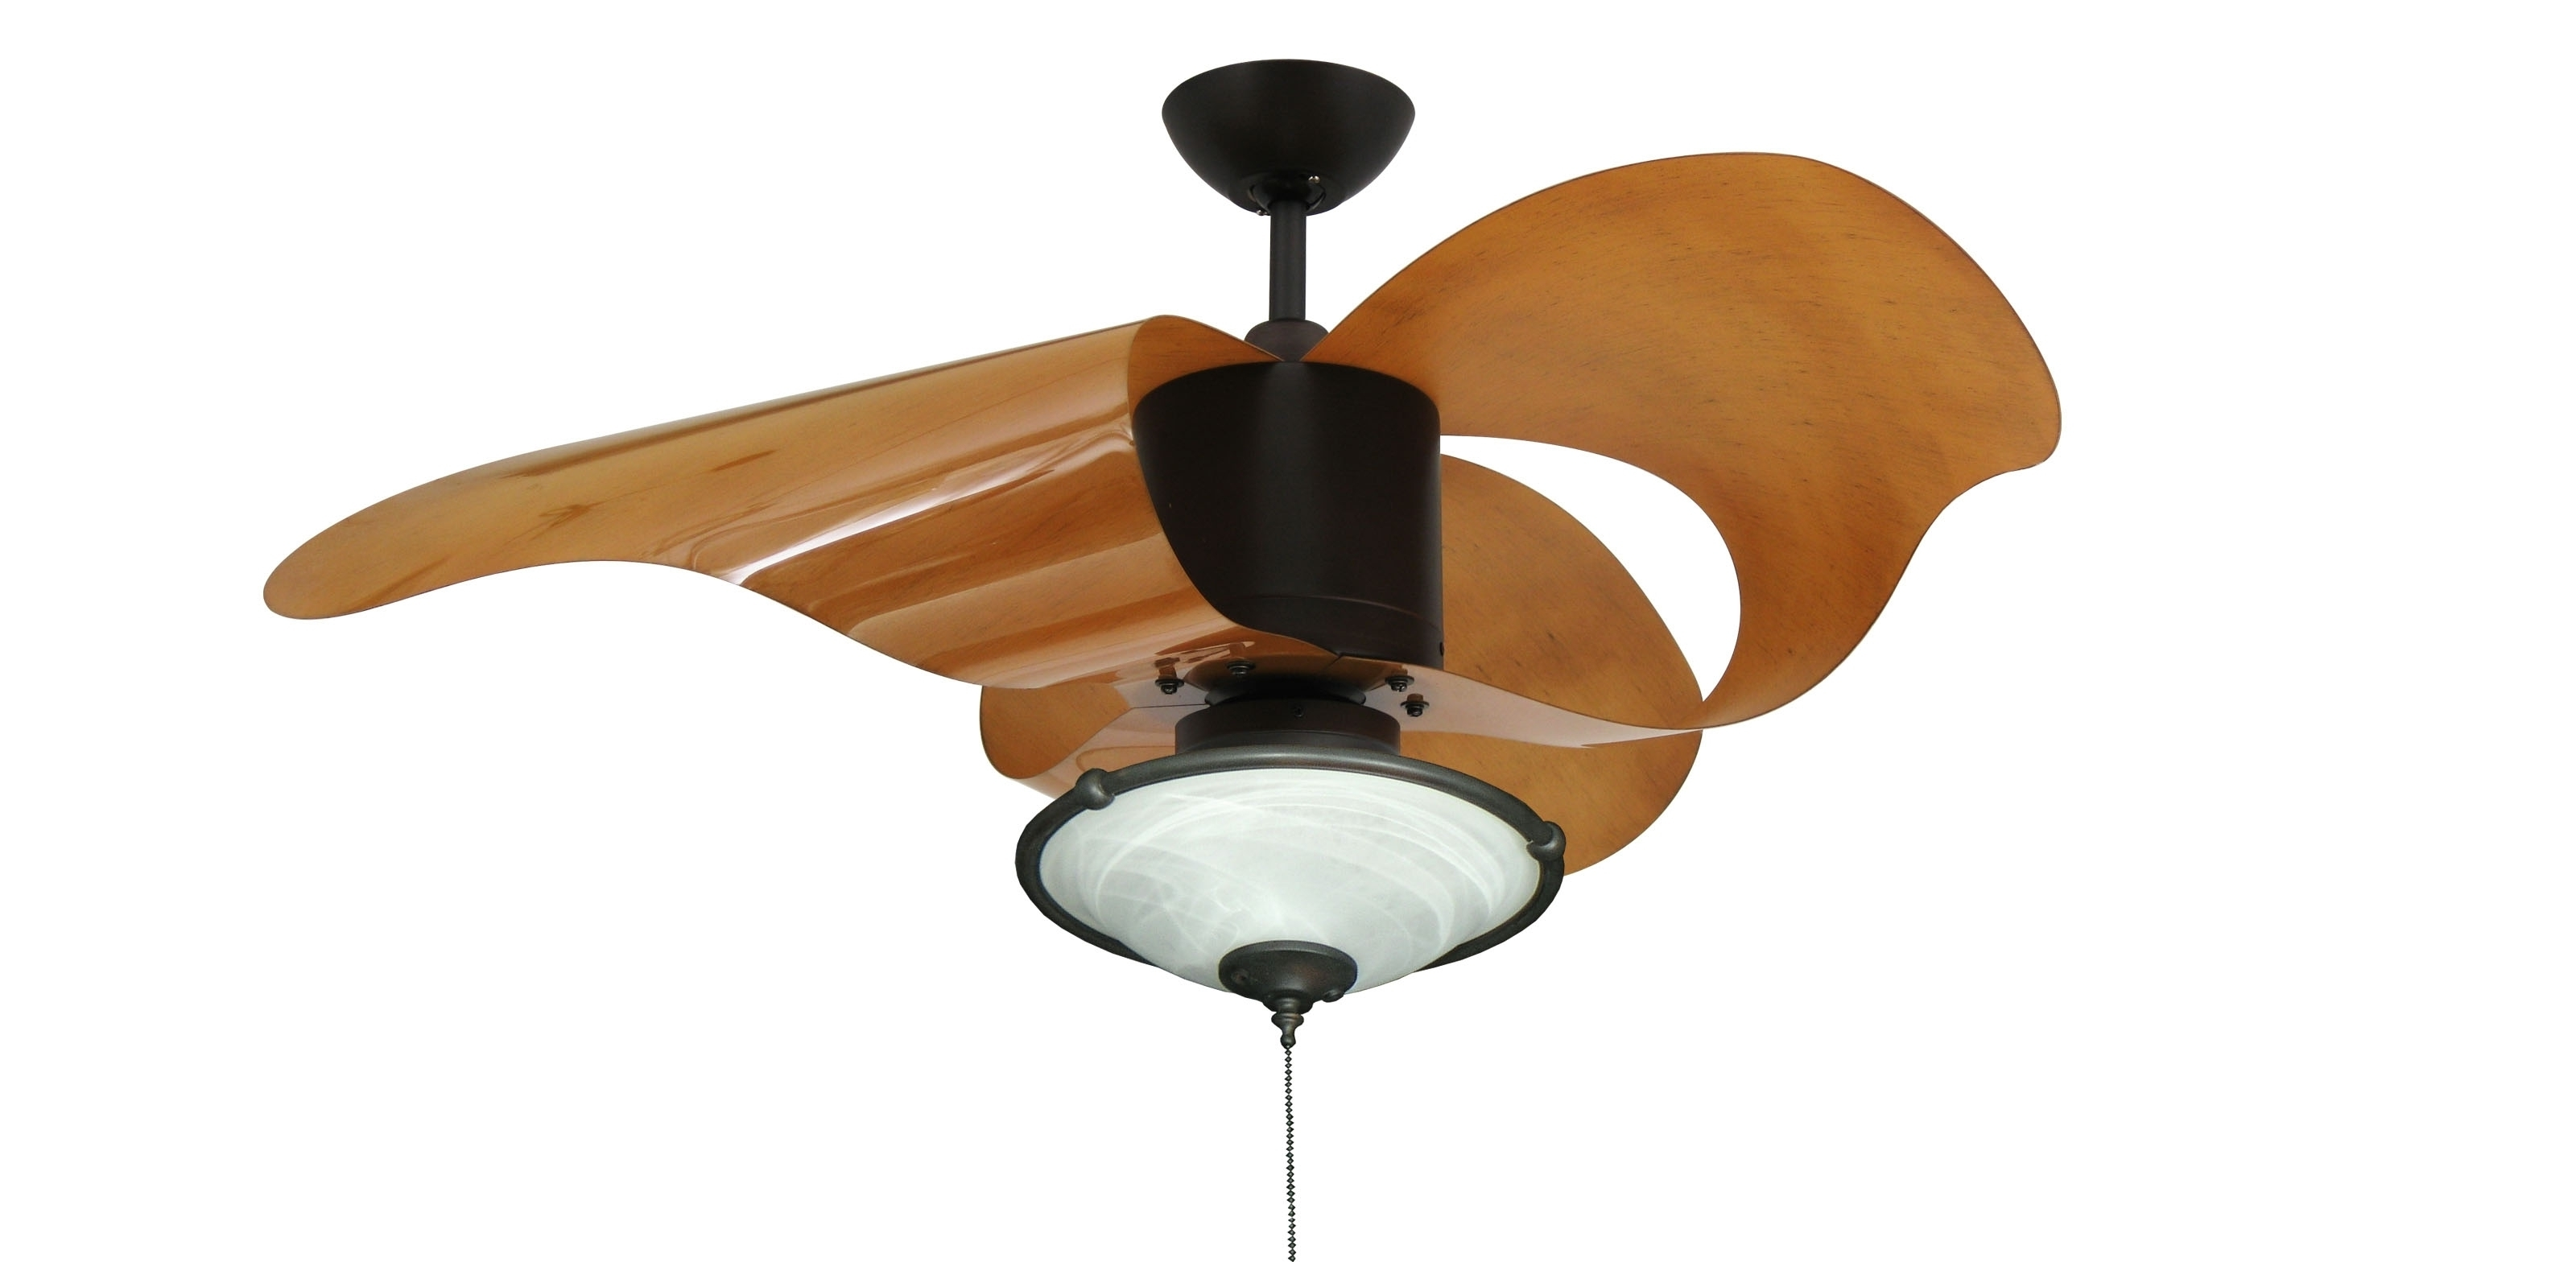 2019 Modern Outdoor Ceiling Fans 52 Antique White Large Room, Modern Within Contemporary Outdoor Ceiling Fans (Gallery 18 of 20)